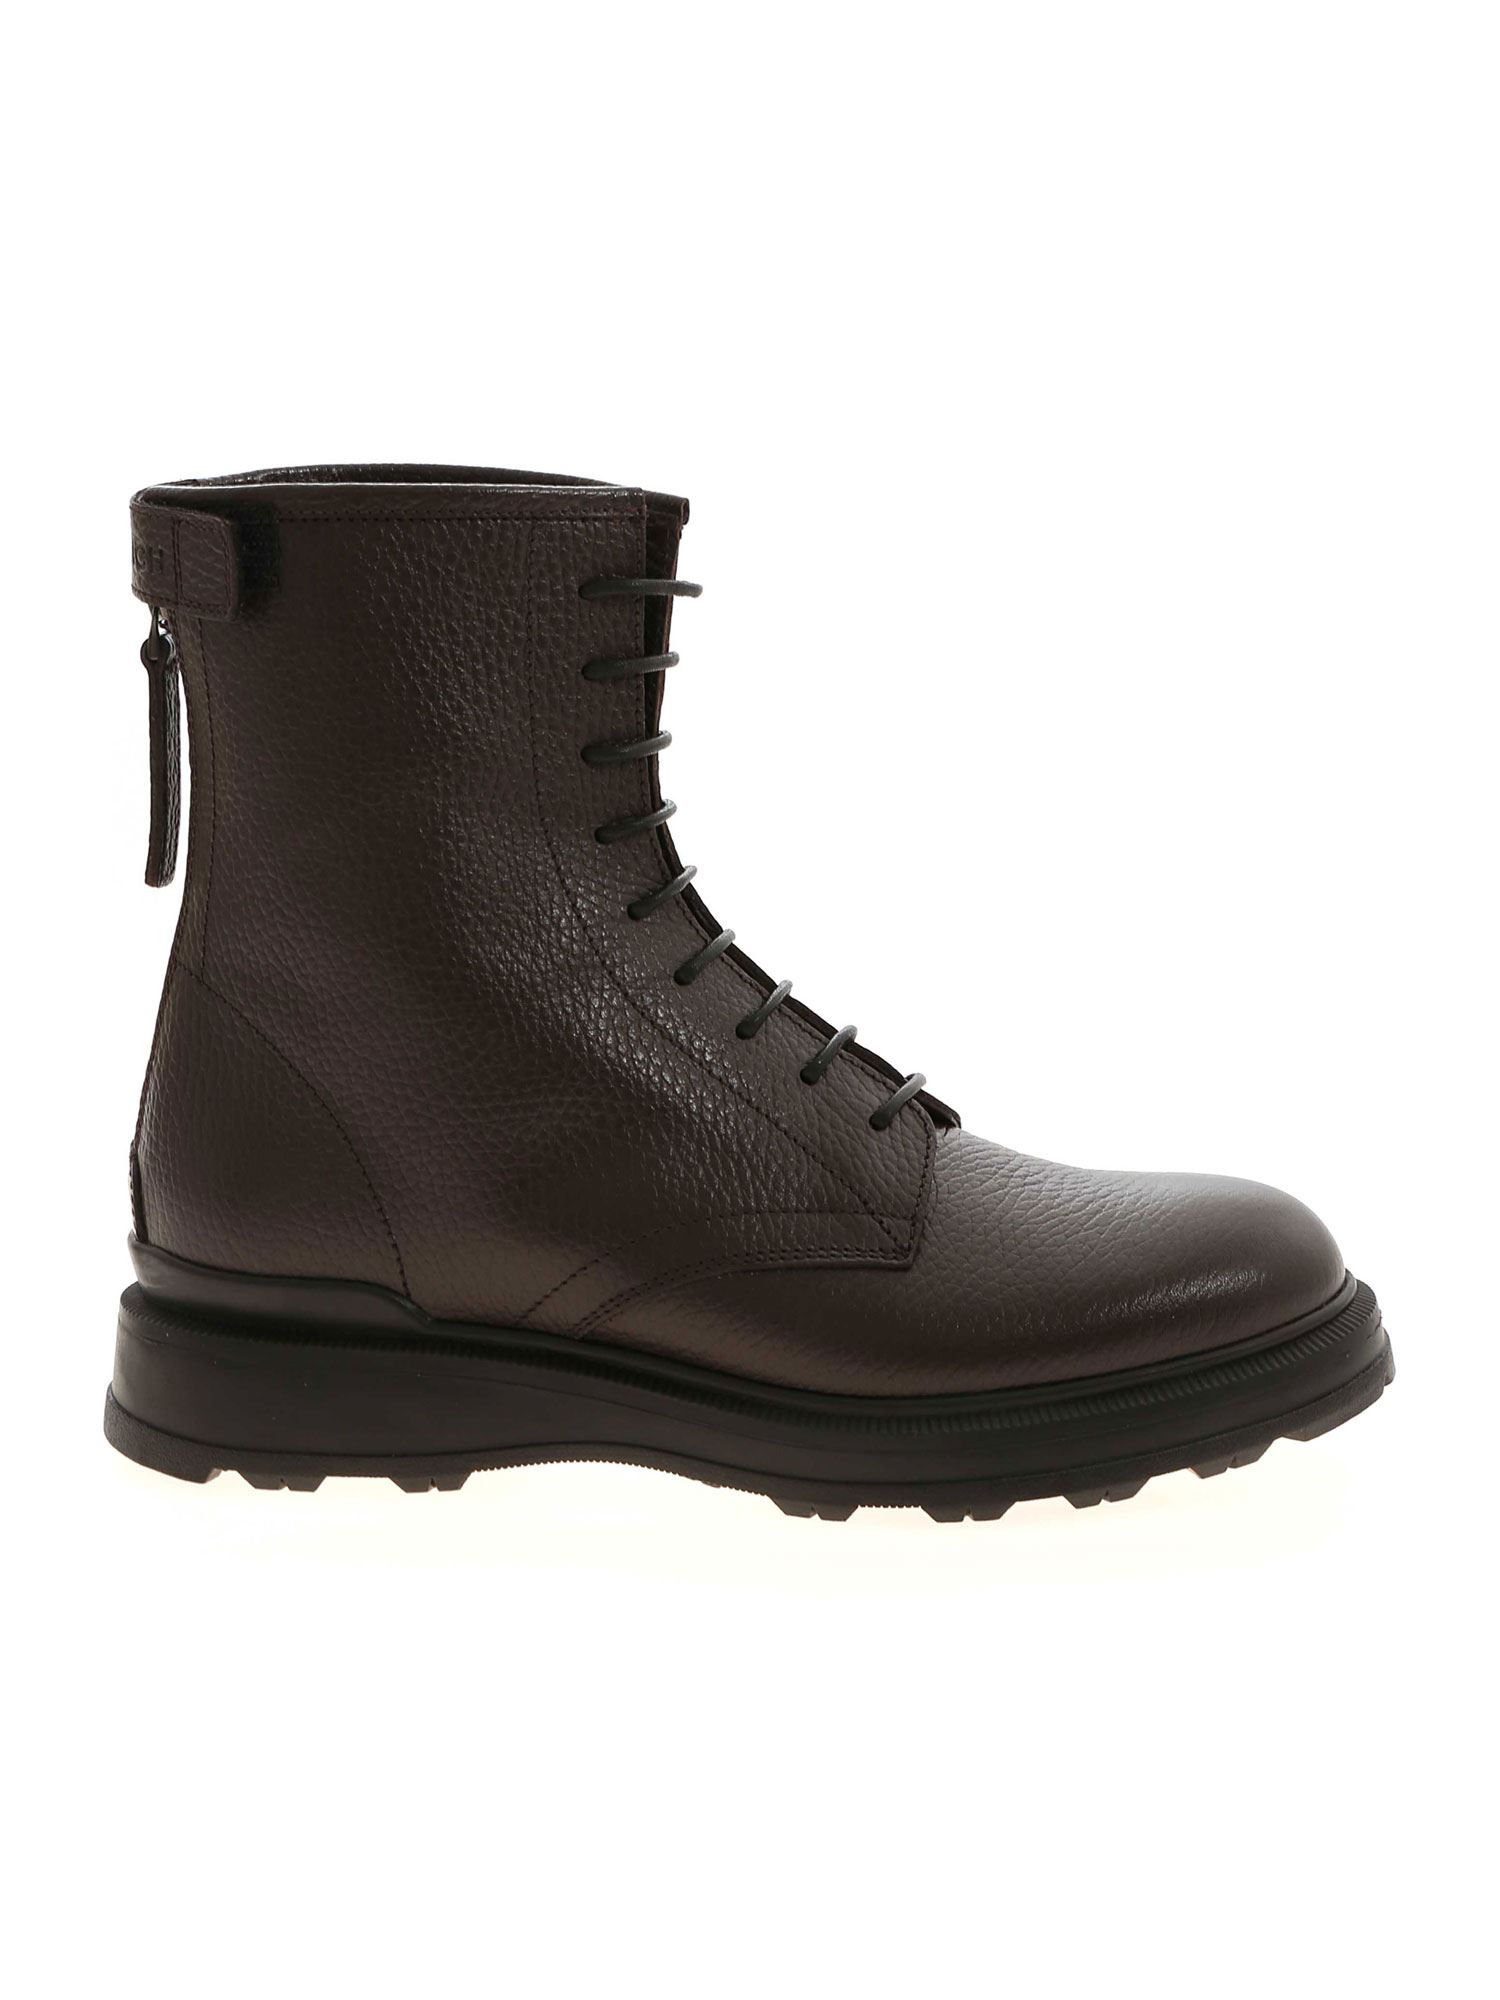 Woolrich LACE-UP ANKLE BOOTS IN BROWN